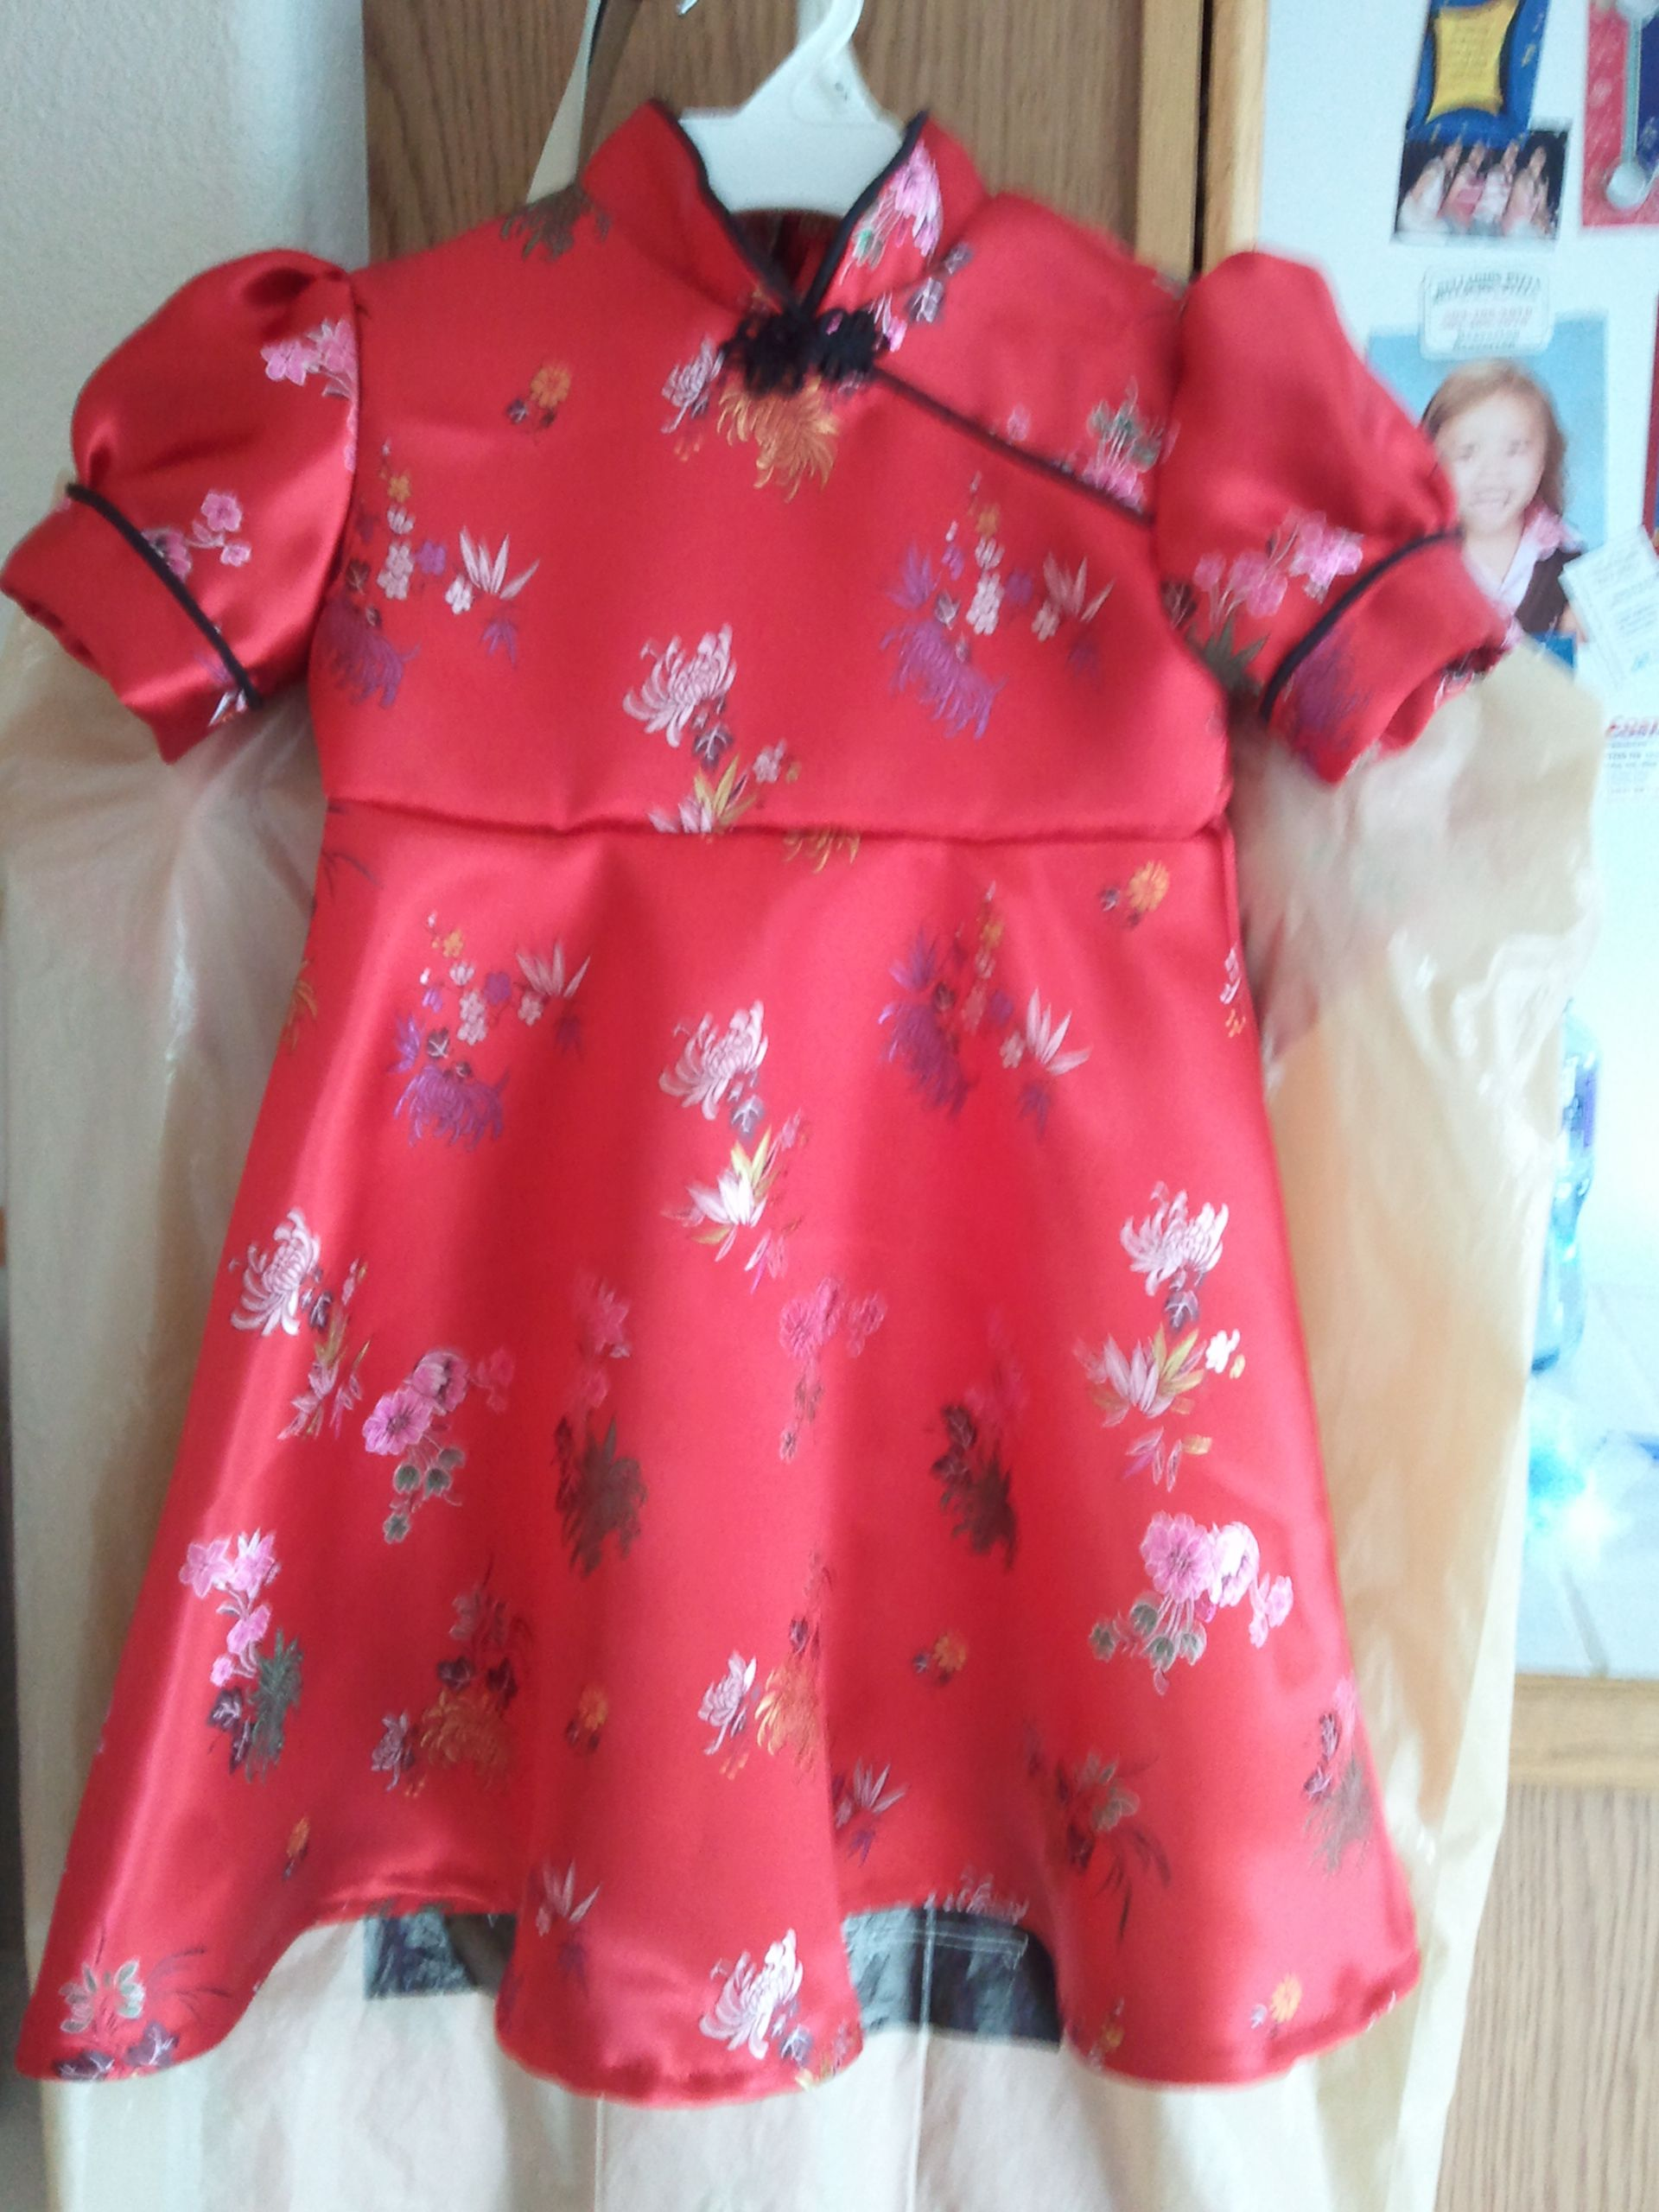 Little girl s red Chinese dress Home Sewn Pinterest